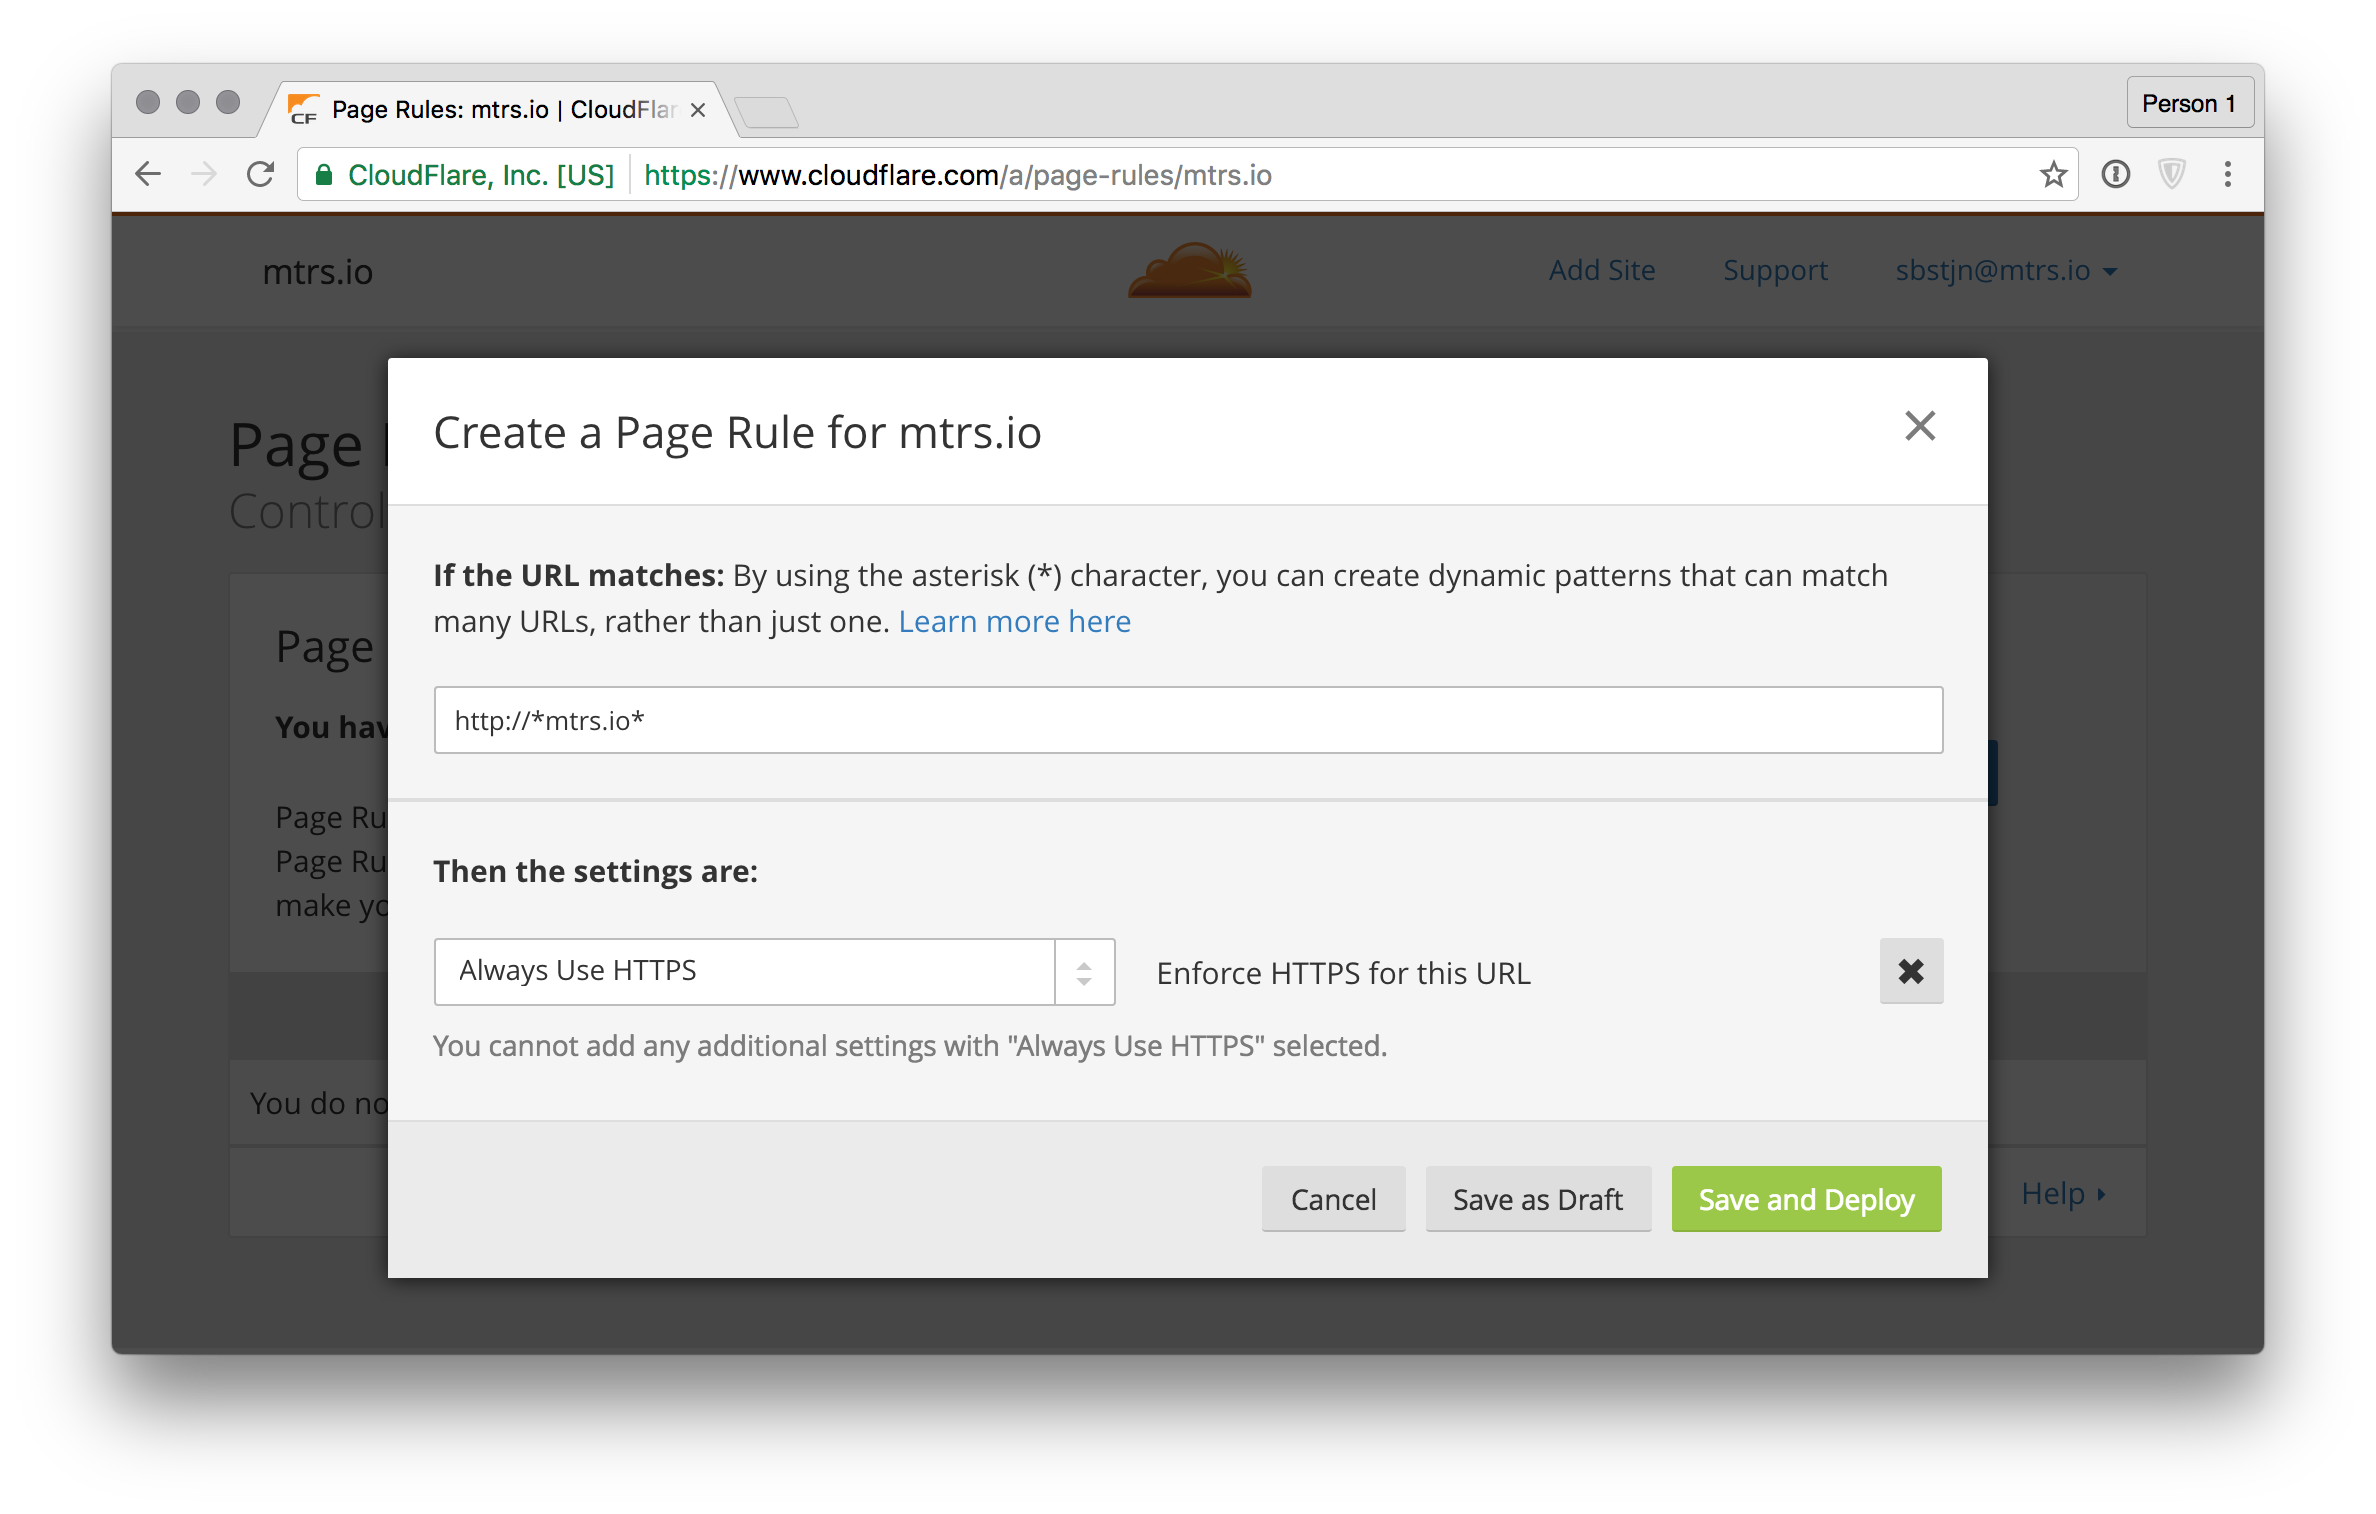 CloudFlare.com Rules - Redirect HTTP to HTTPS